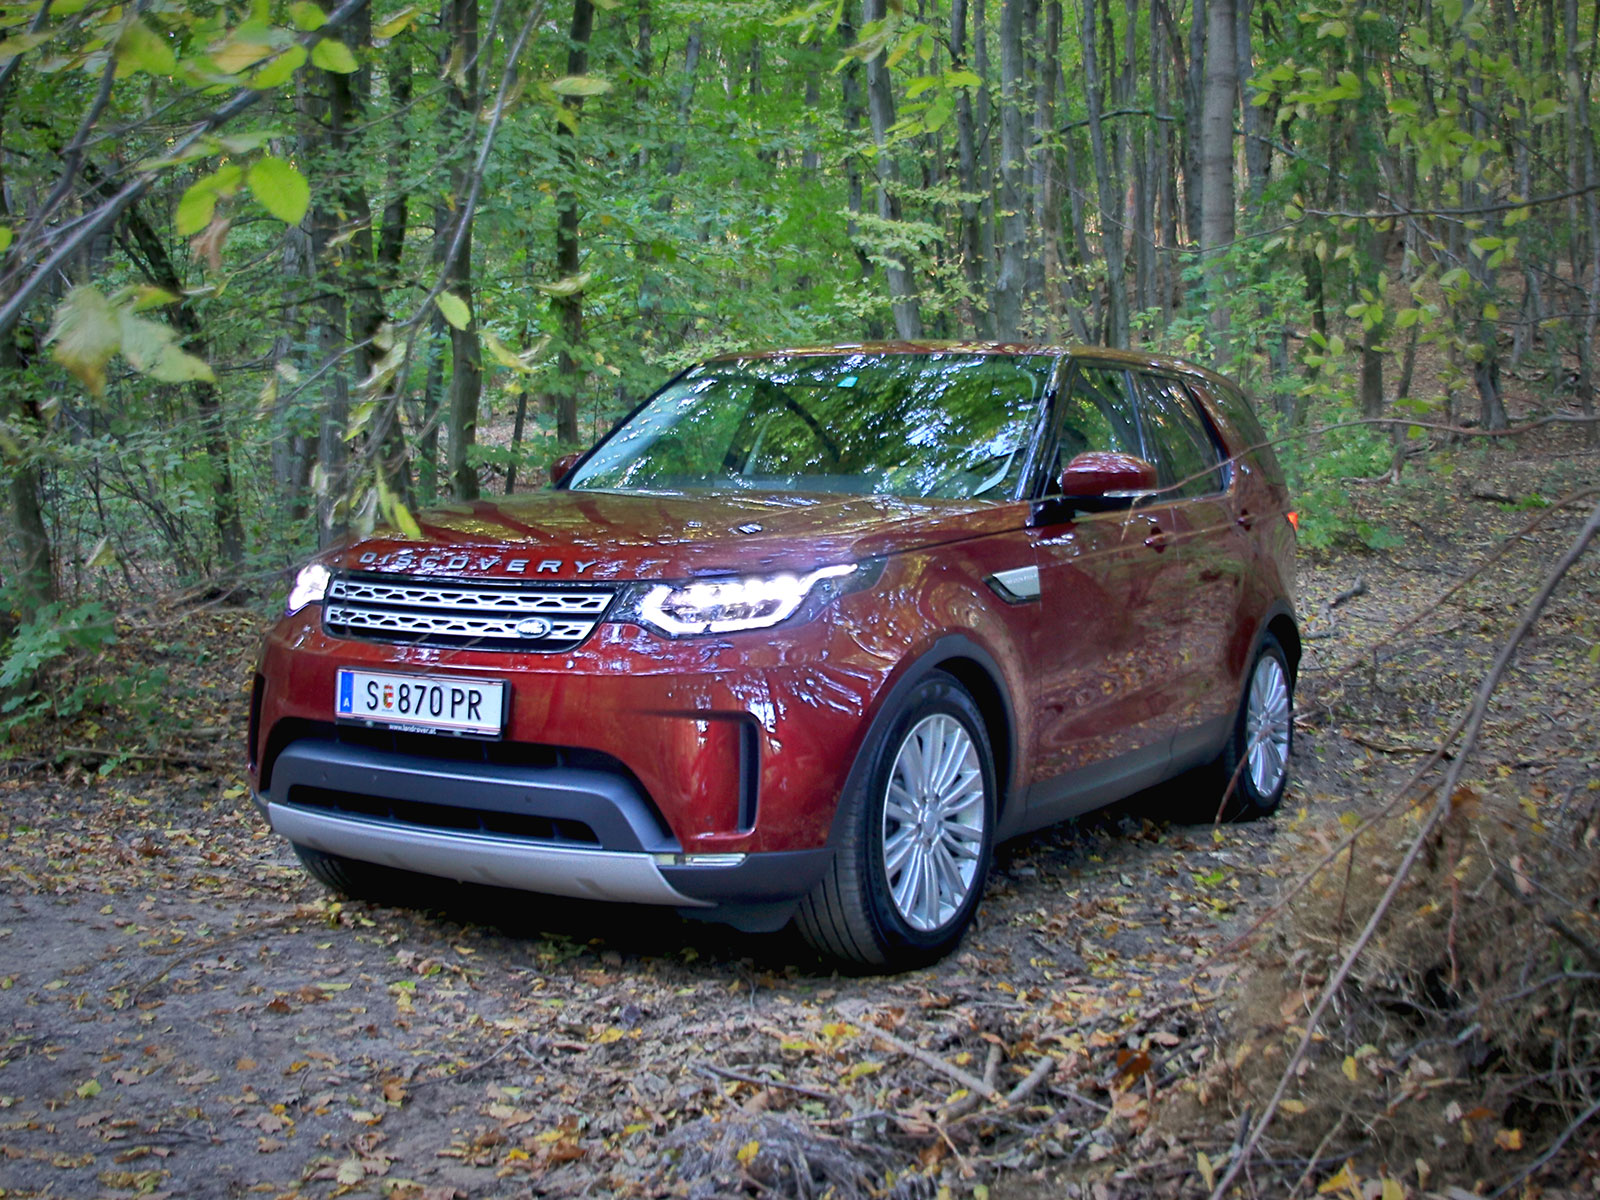 land rover discovery zulässiges gesamtgewicht with Land Rover Discovery 20 Sd4 Hse Testbericht on Specifications as well Slideshow likewise Land Rover Discovery 20 Sd4 Hse Testbericht in addition Land Rover Discovery 4 30 Sdv6 Hse Testbericht likewise